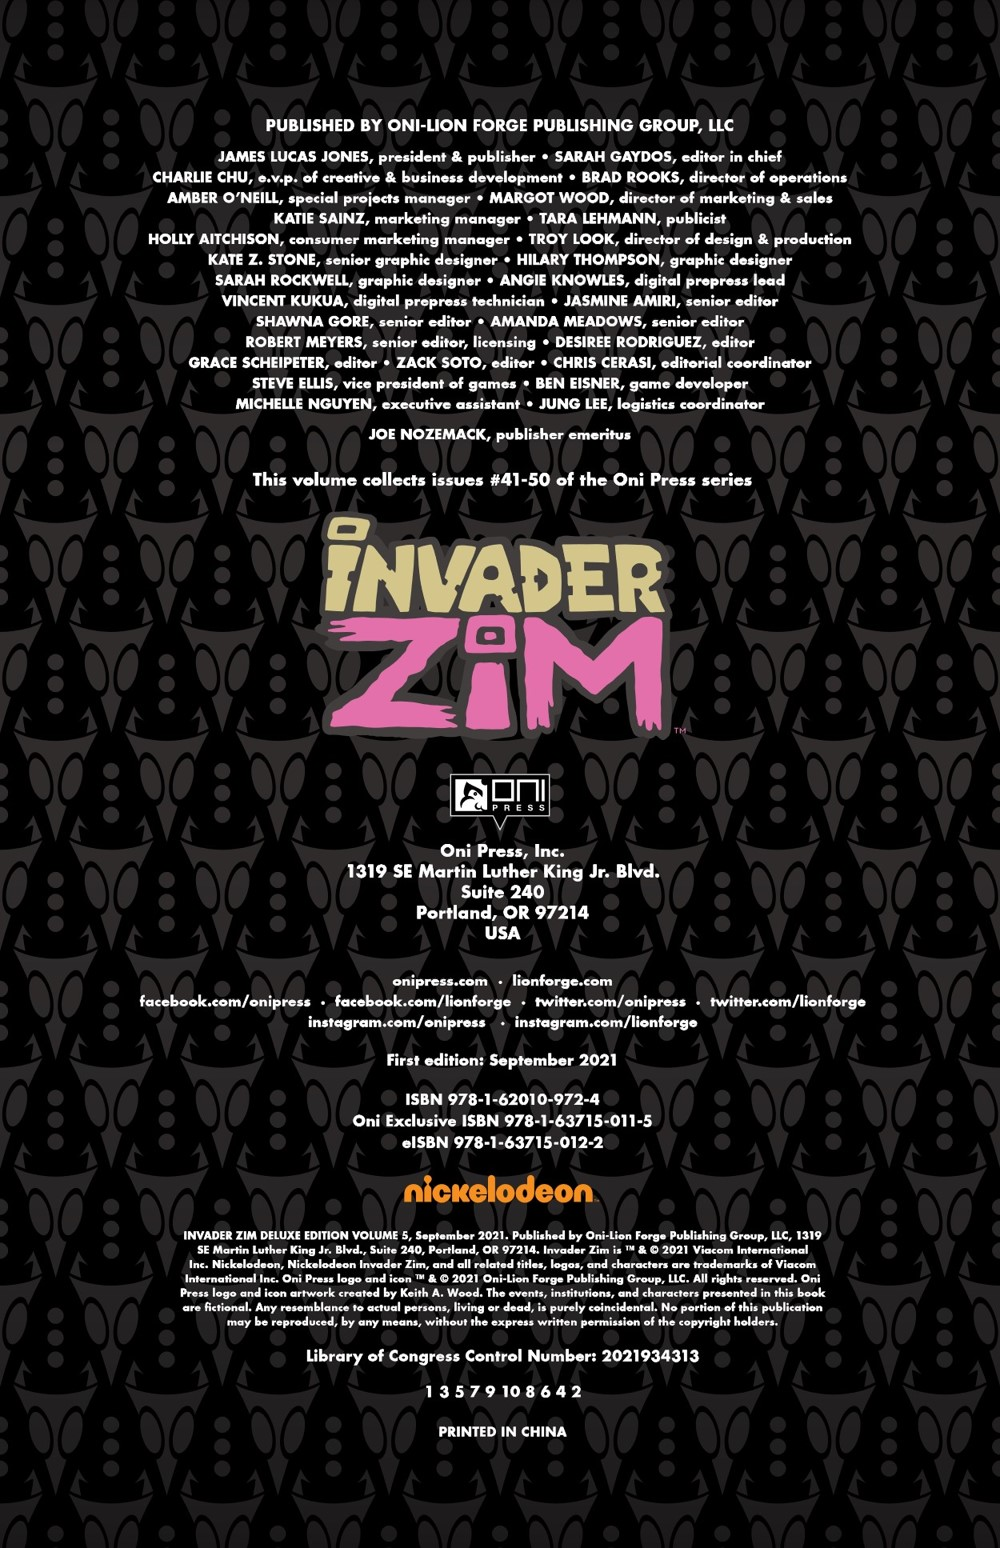 INVADERZIM5-HC-REFERENCE-005 ComicList Previews: INVADER ZIM DELUXE EDITION VOLUME 5 HC